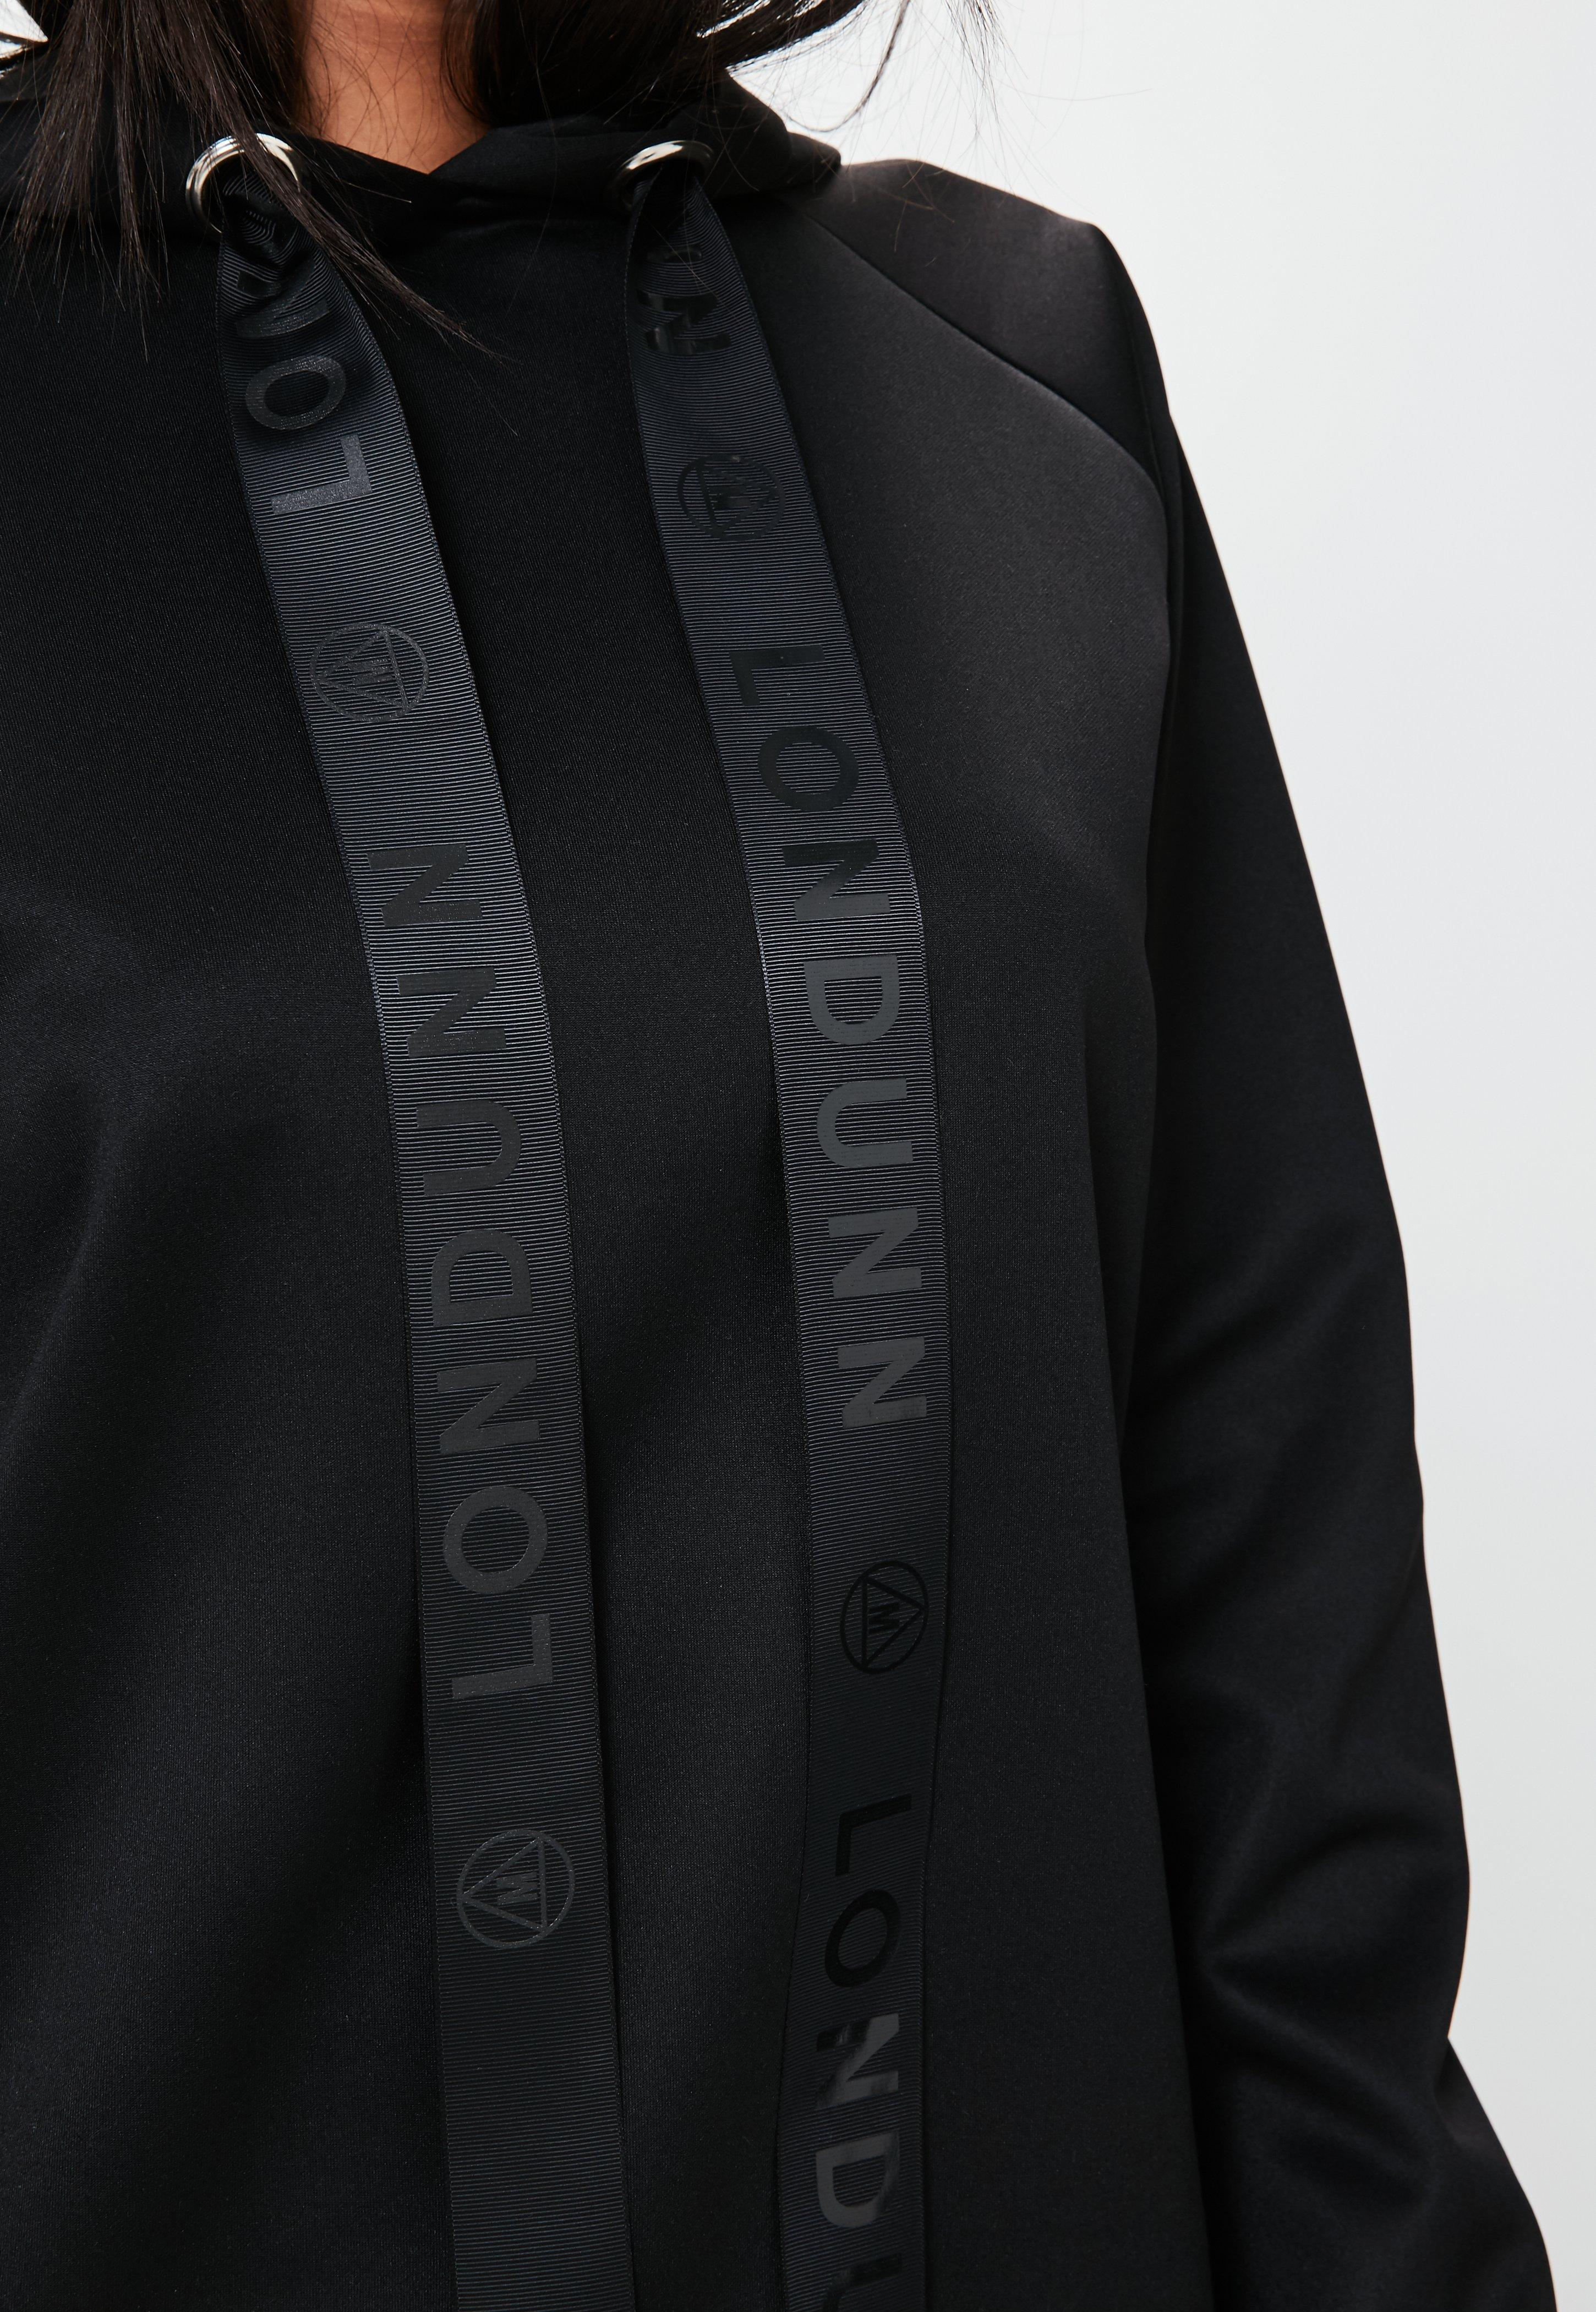 How To Fix The Rings On A Hoodie